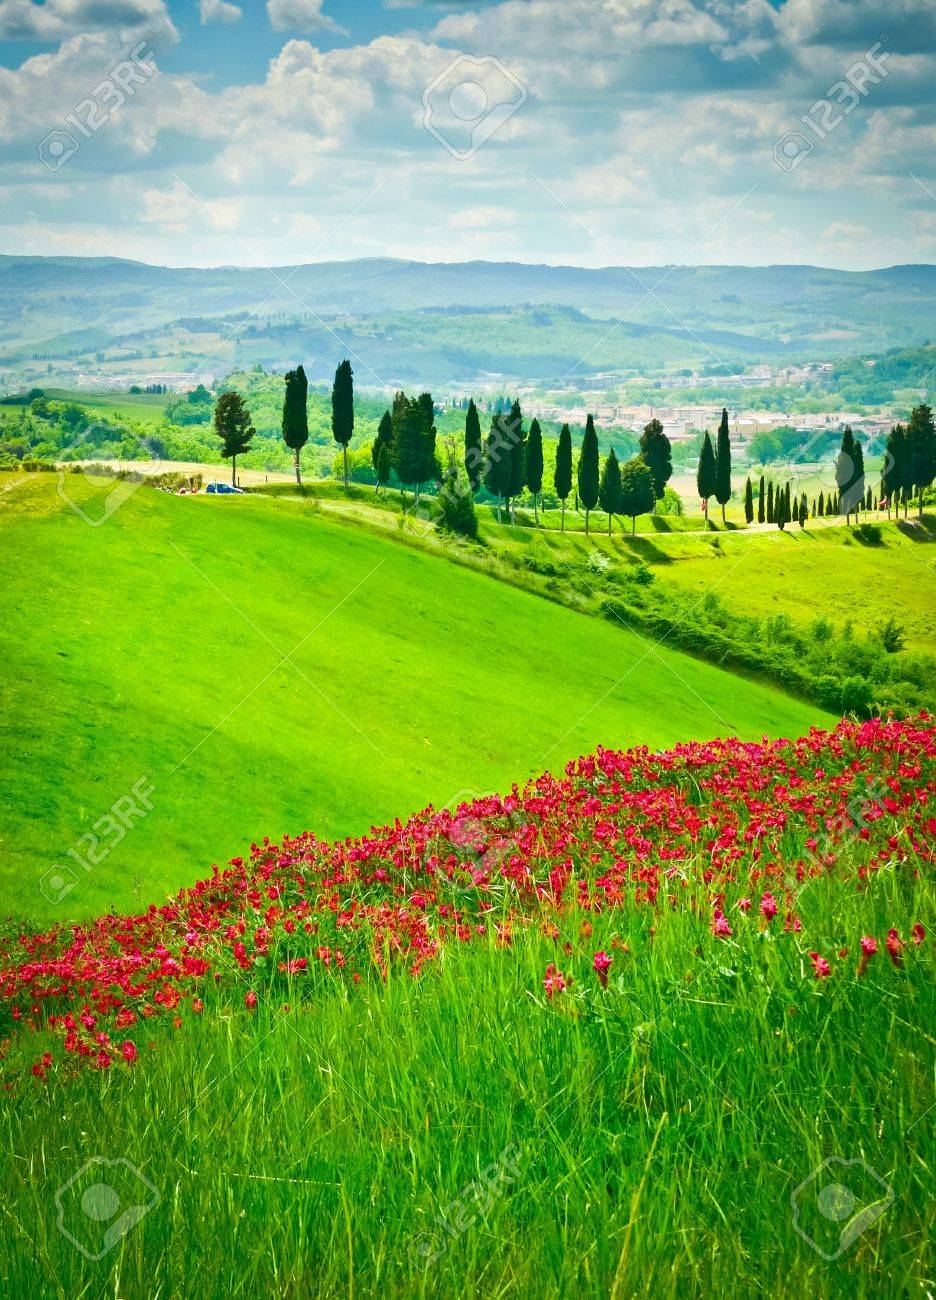 Hill covered by red flowers overlooking a road lined by cypresses on a sunny day near Certaldo, Tuscany, Italy Standard-Bild - 18910349